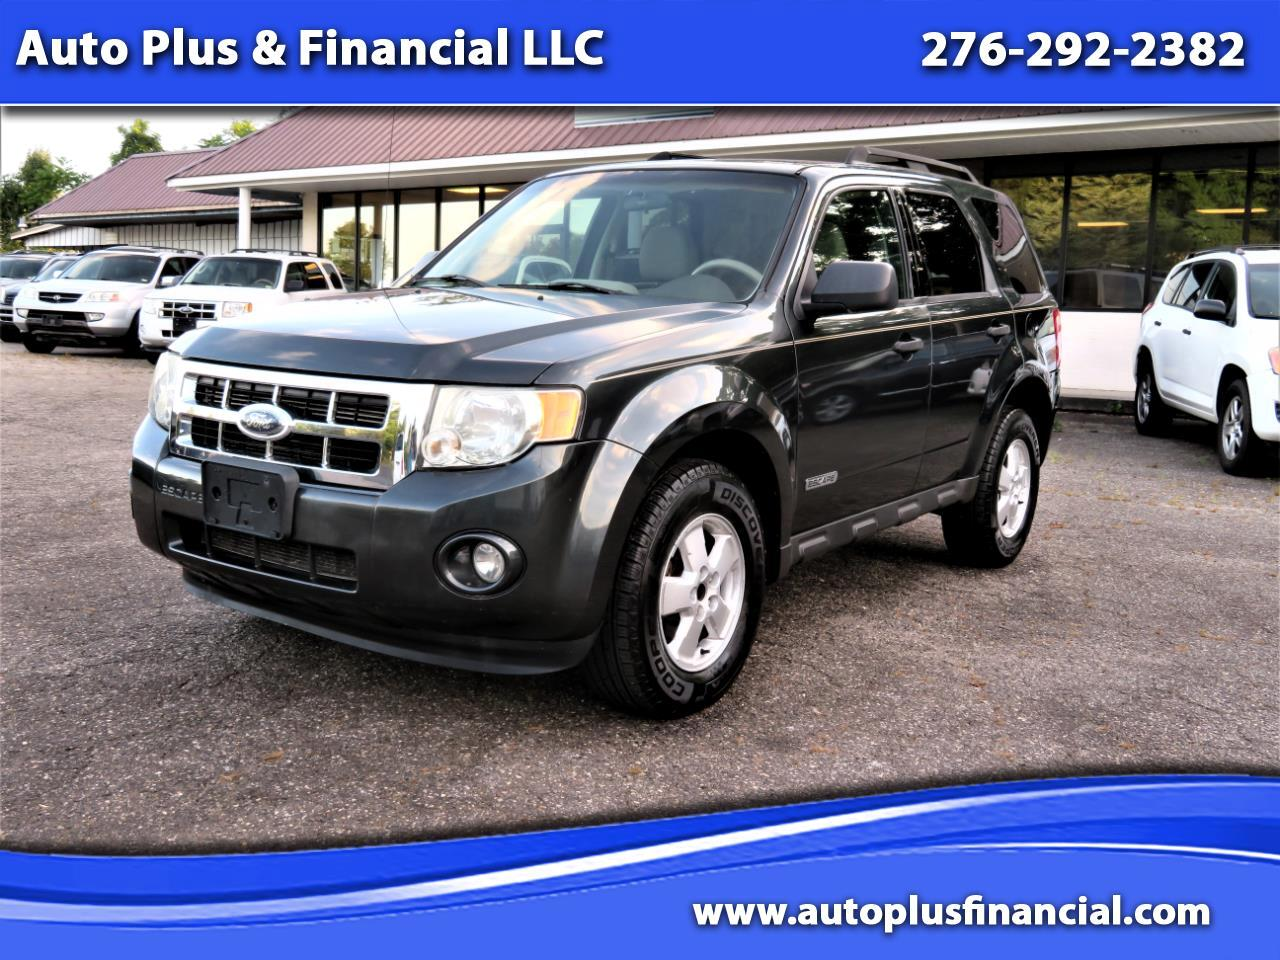 Ford Escape 4WD 4dr I4 Auto XLT 2008